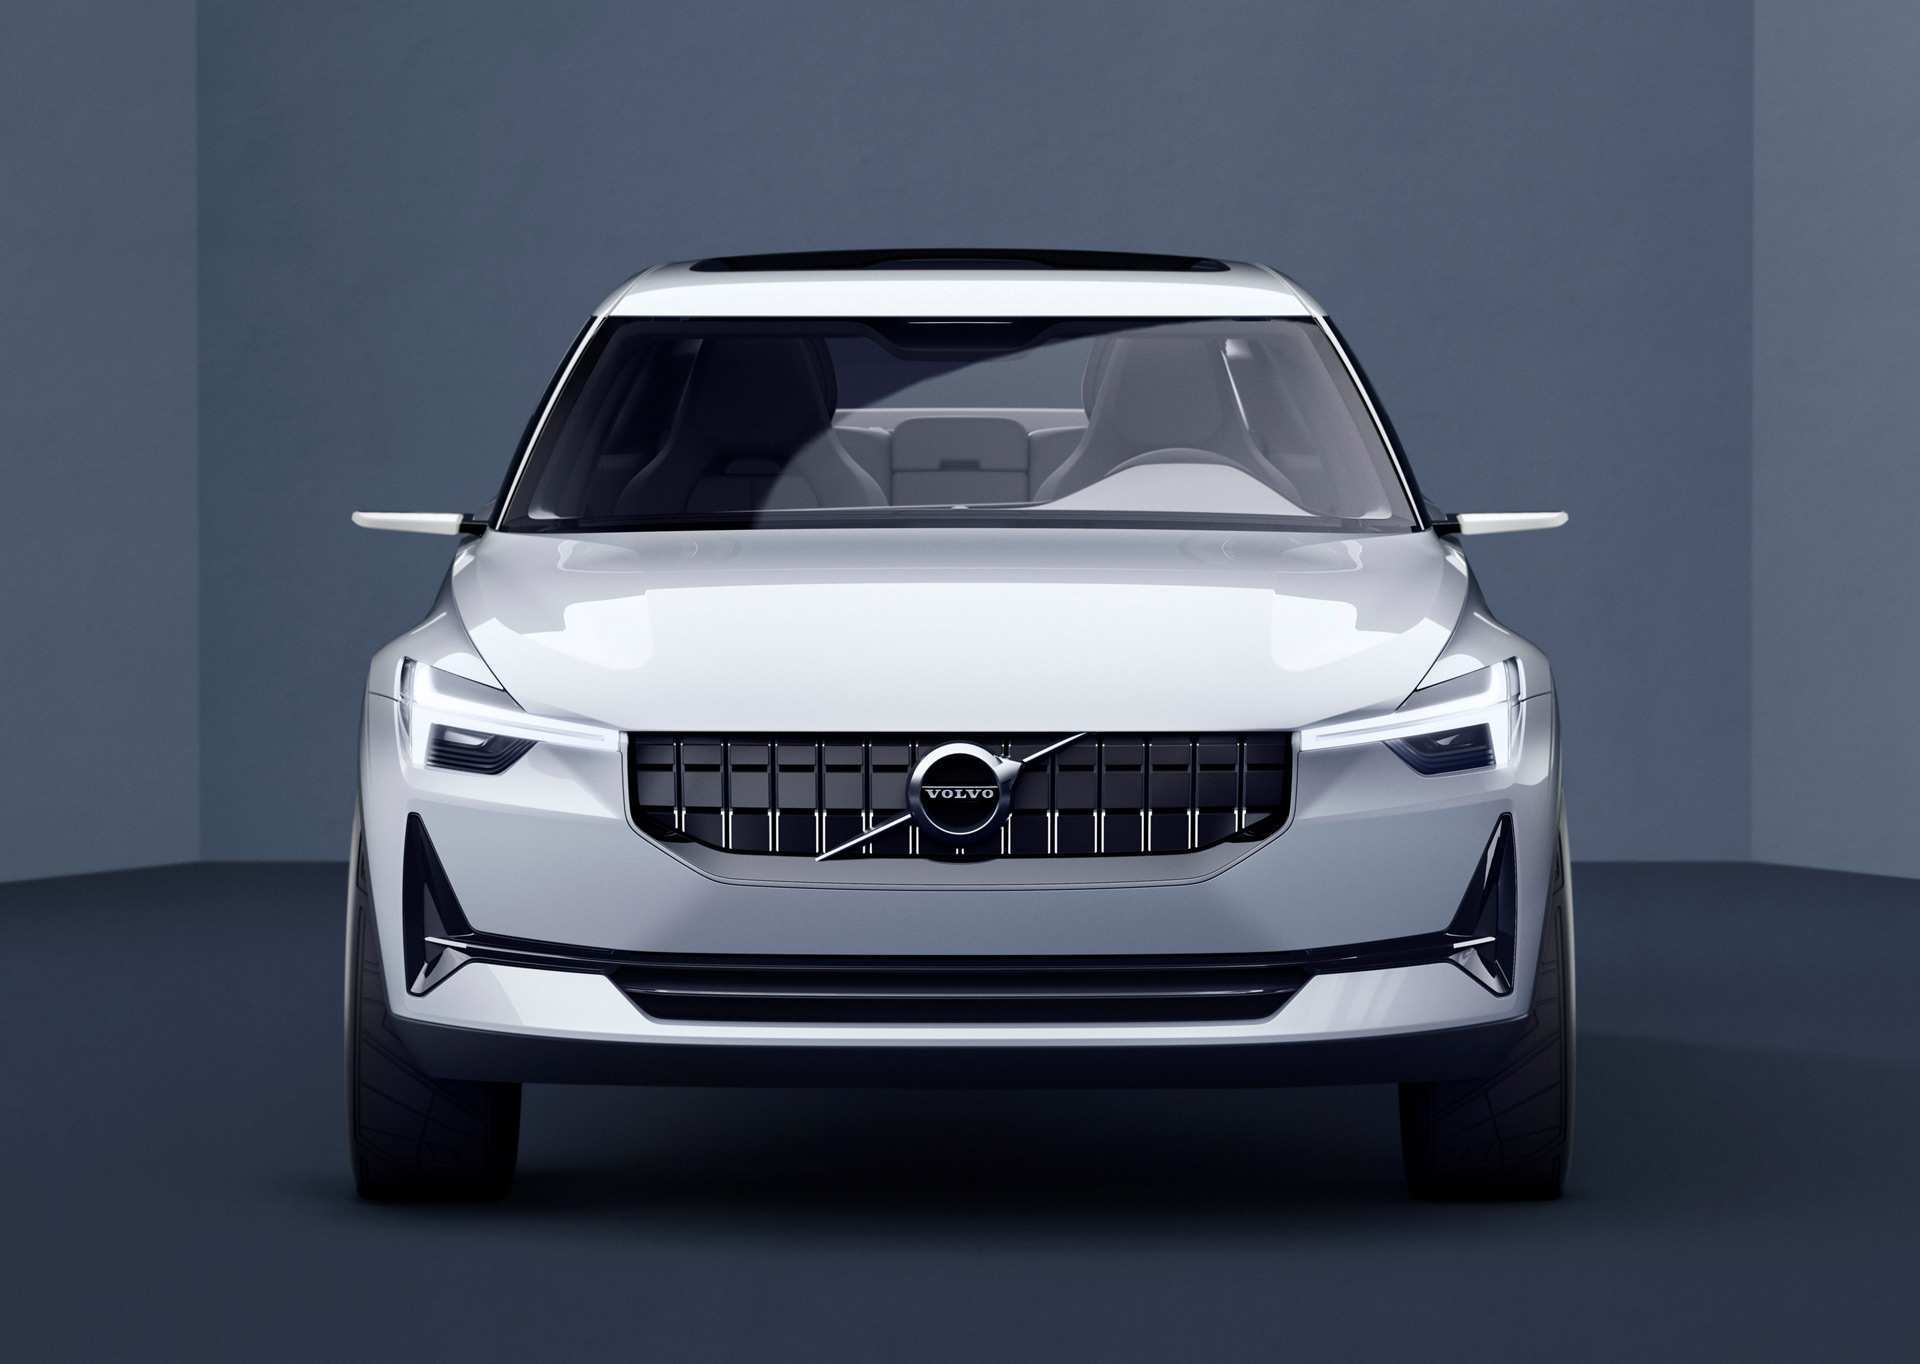 80 New Volvo Electric Vehicles 2020 Spy Shoot by Volvo Electric Vehicles 2020